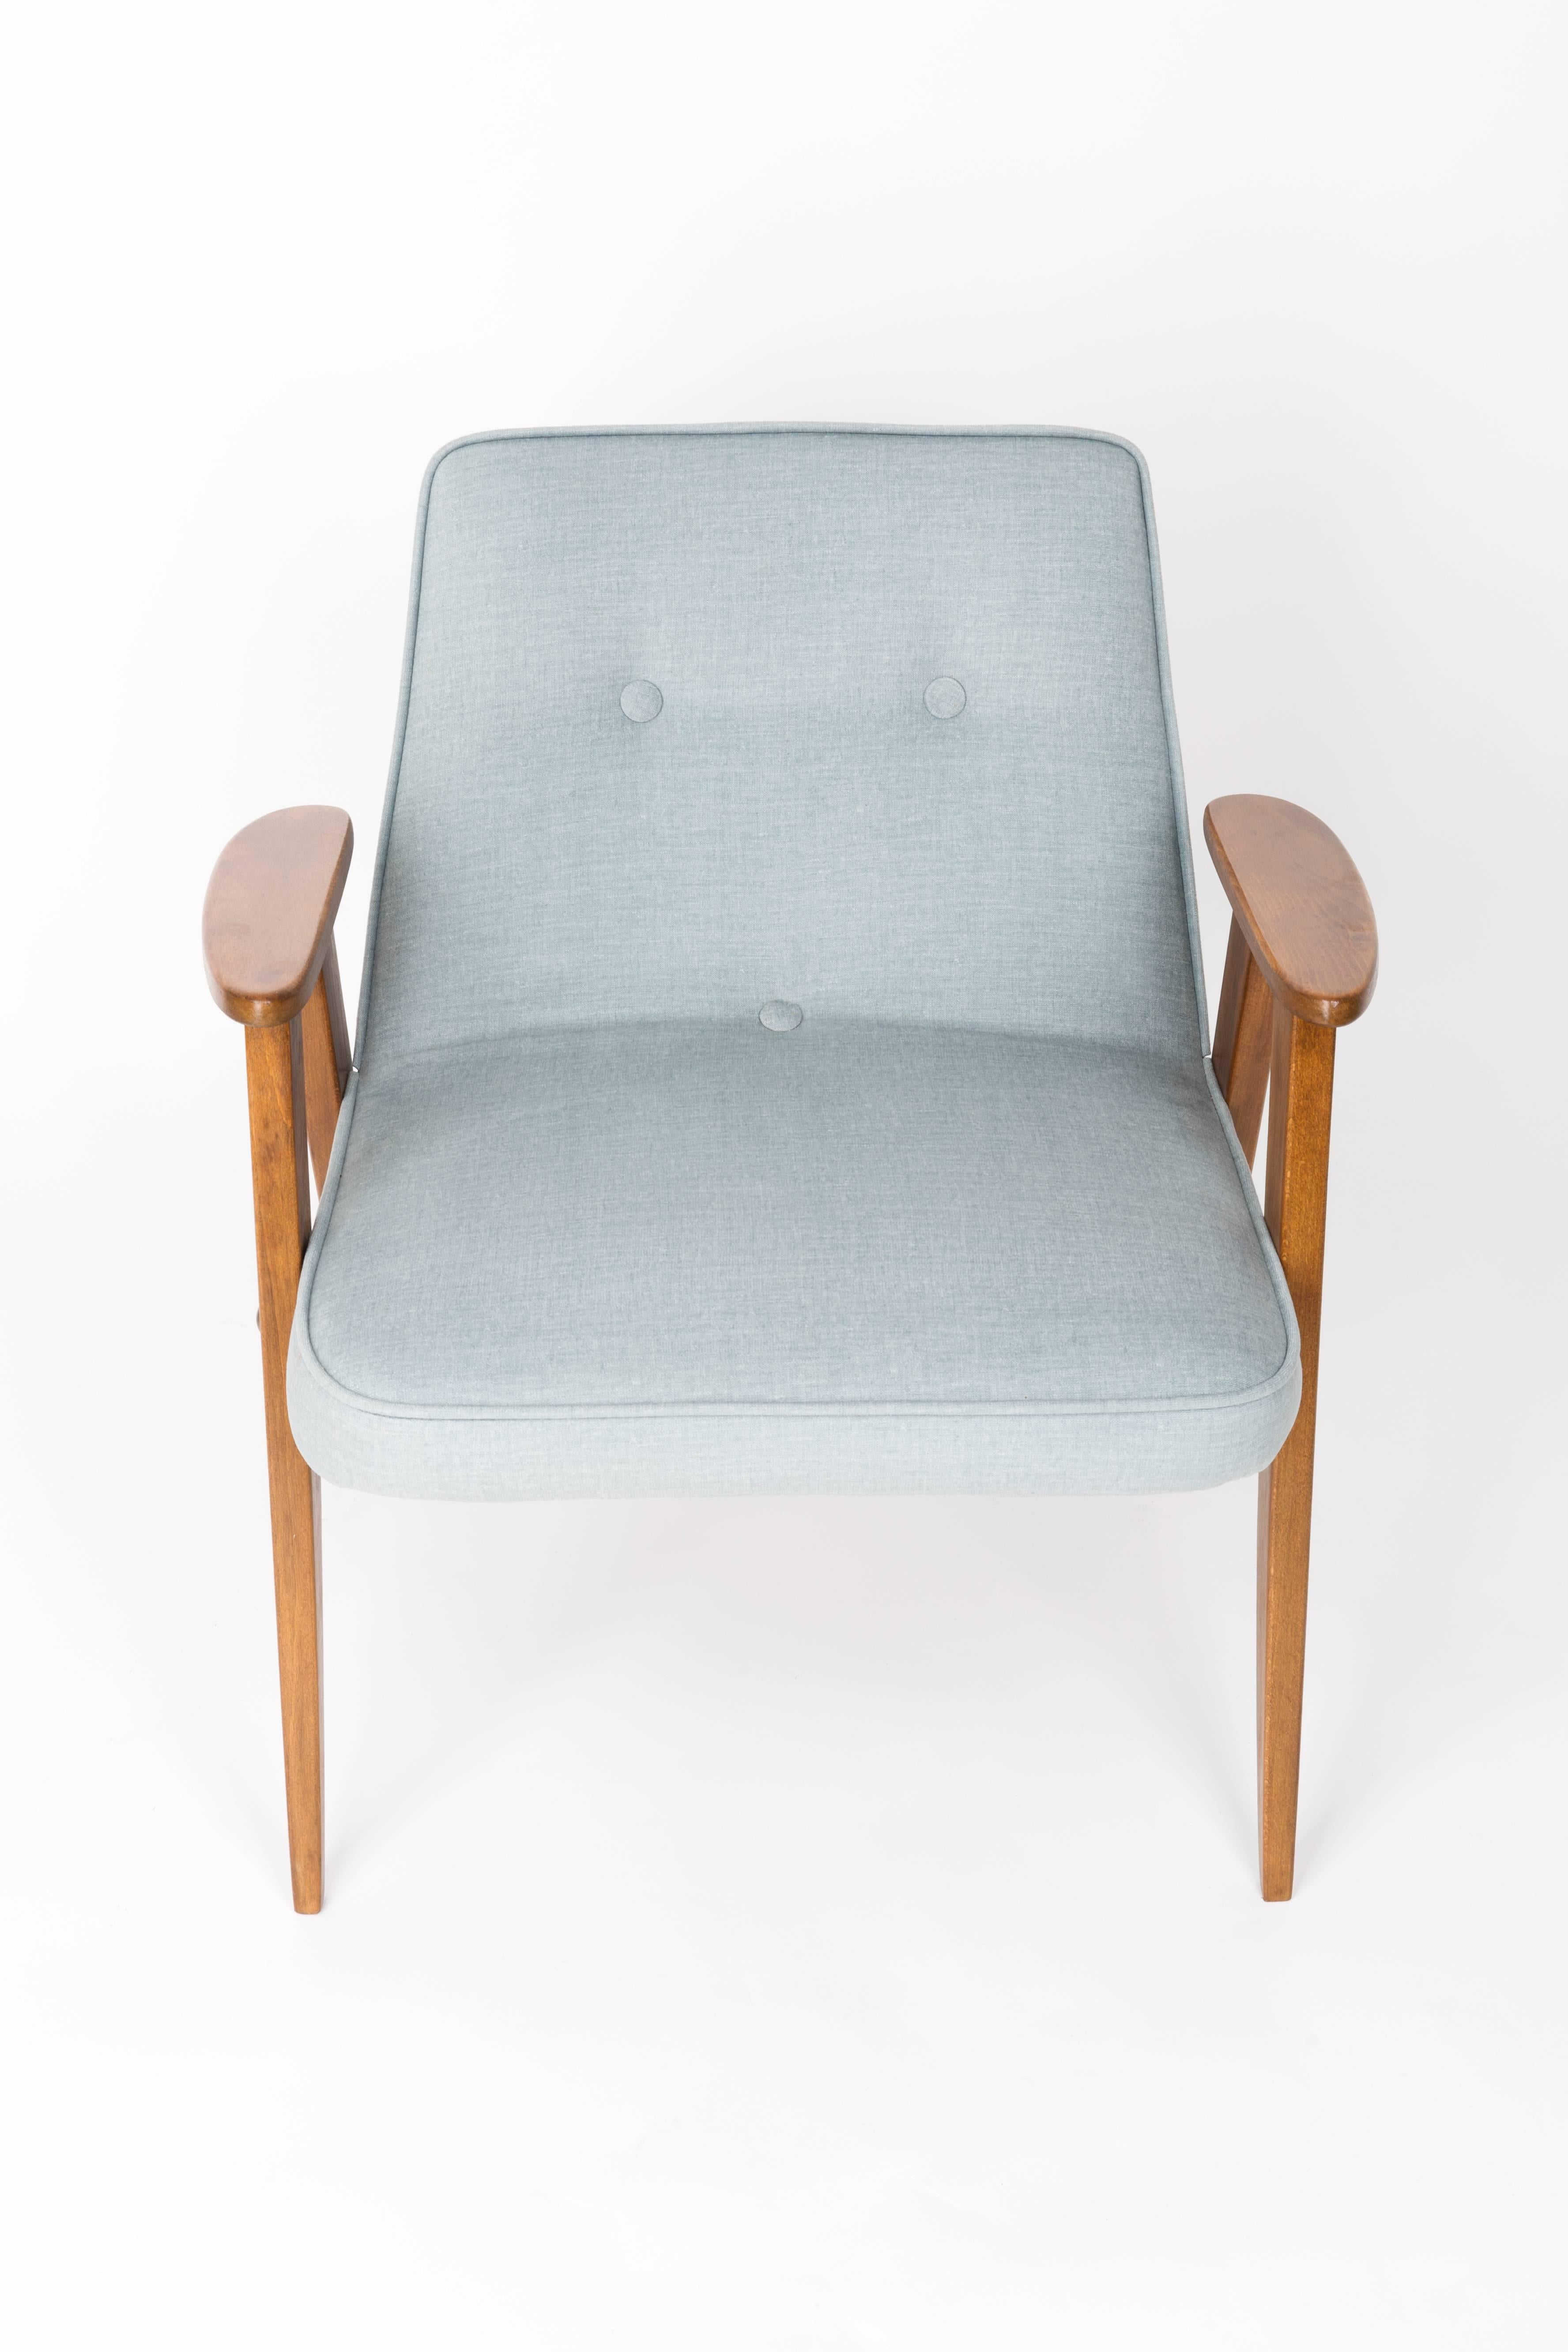 Mid Century Modern 366 Green Armchair, Jozef Chierowski, 1960s For Sale